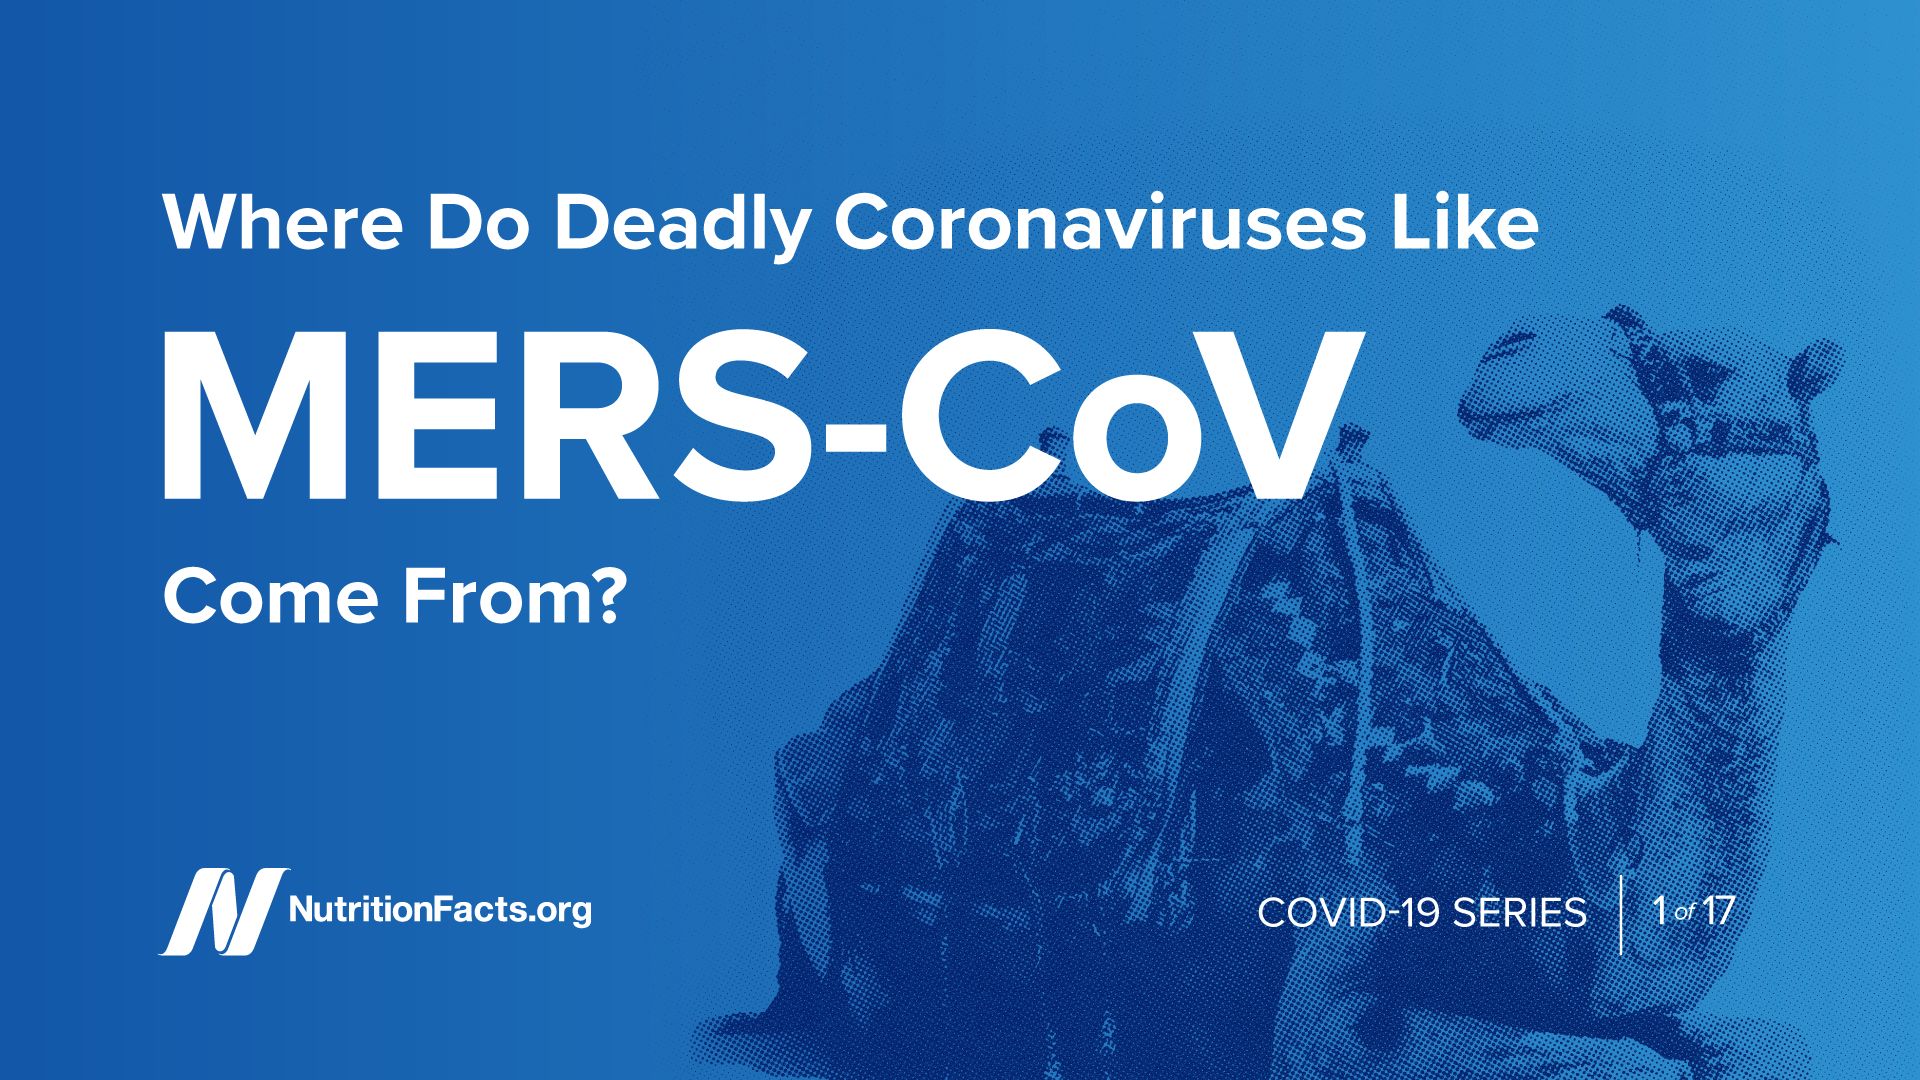 Where Do Deadly Coronaviruses Like MERS-CoV Come From?